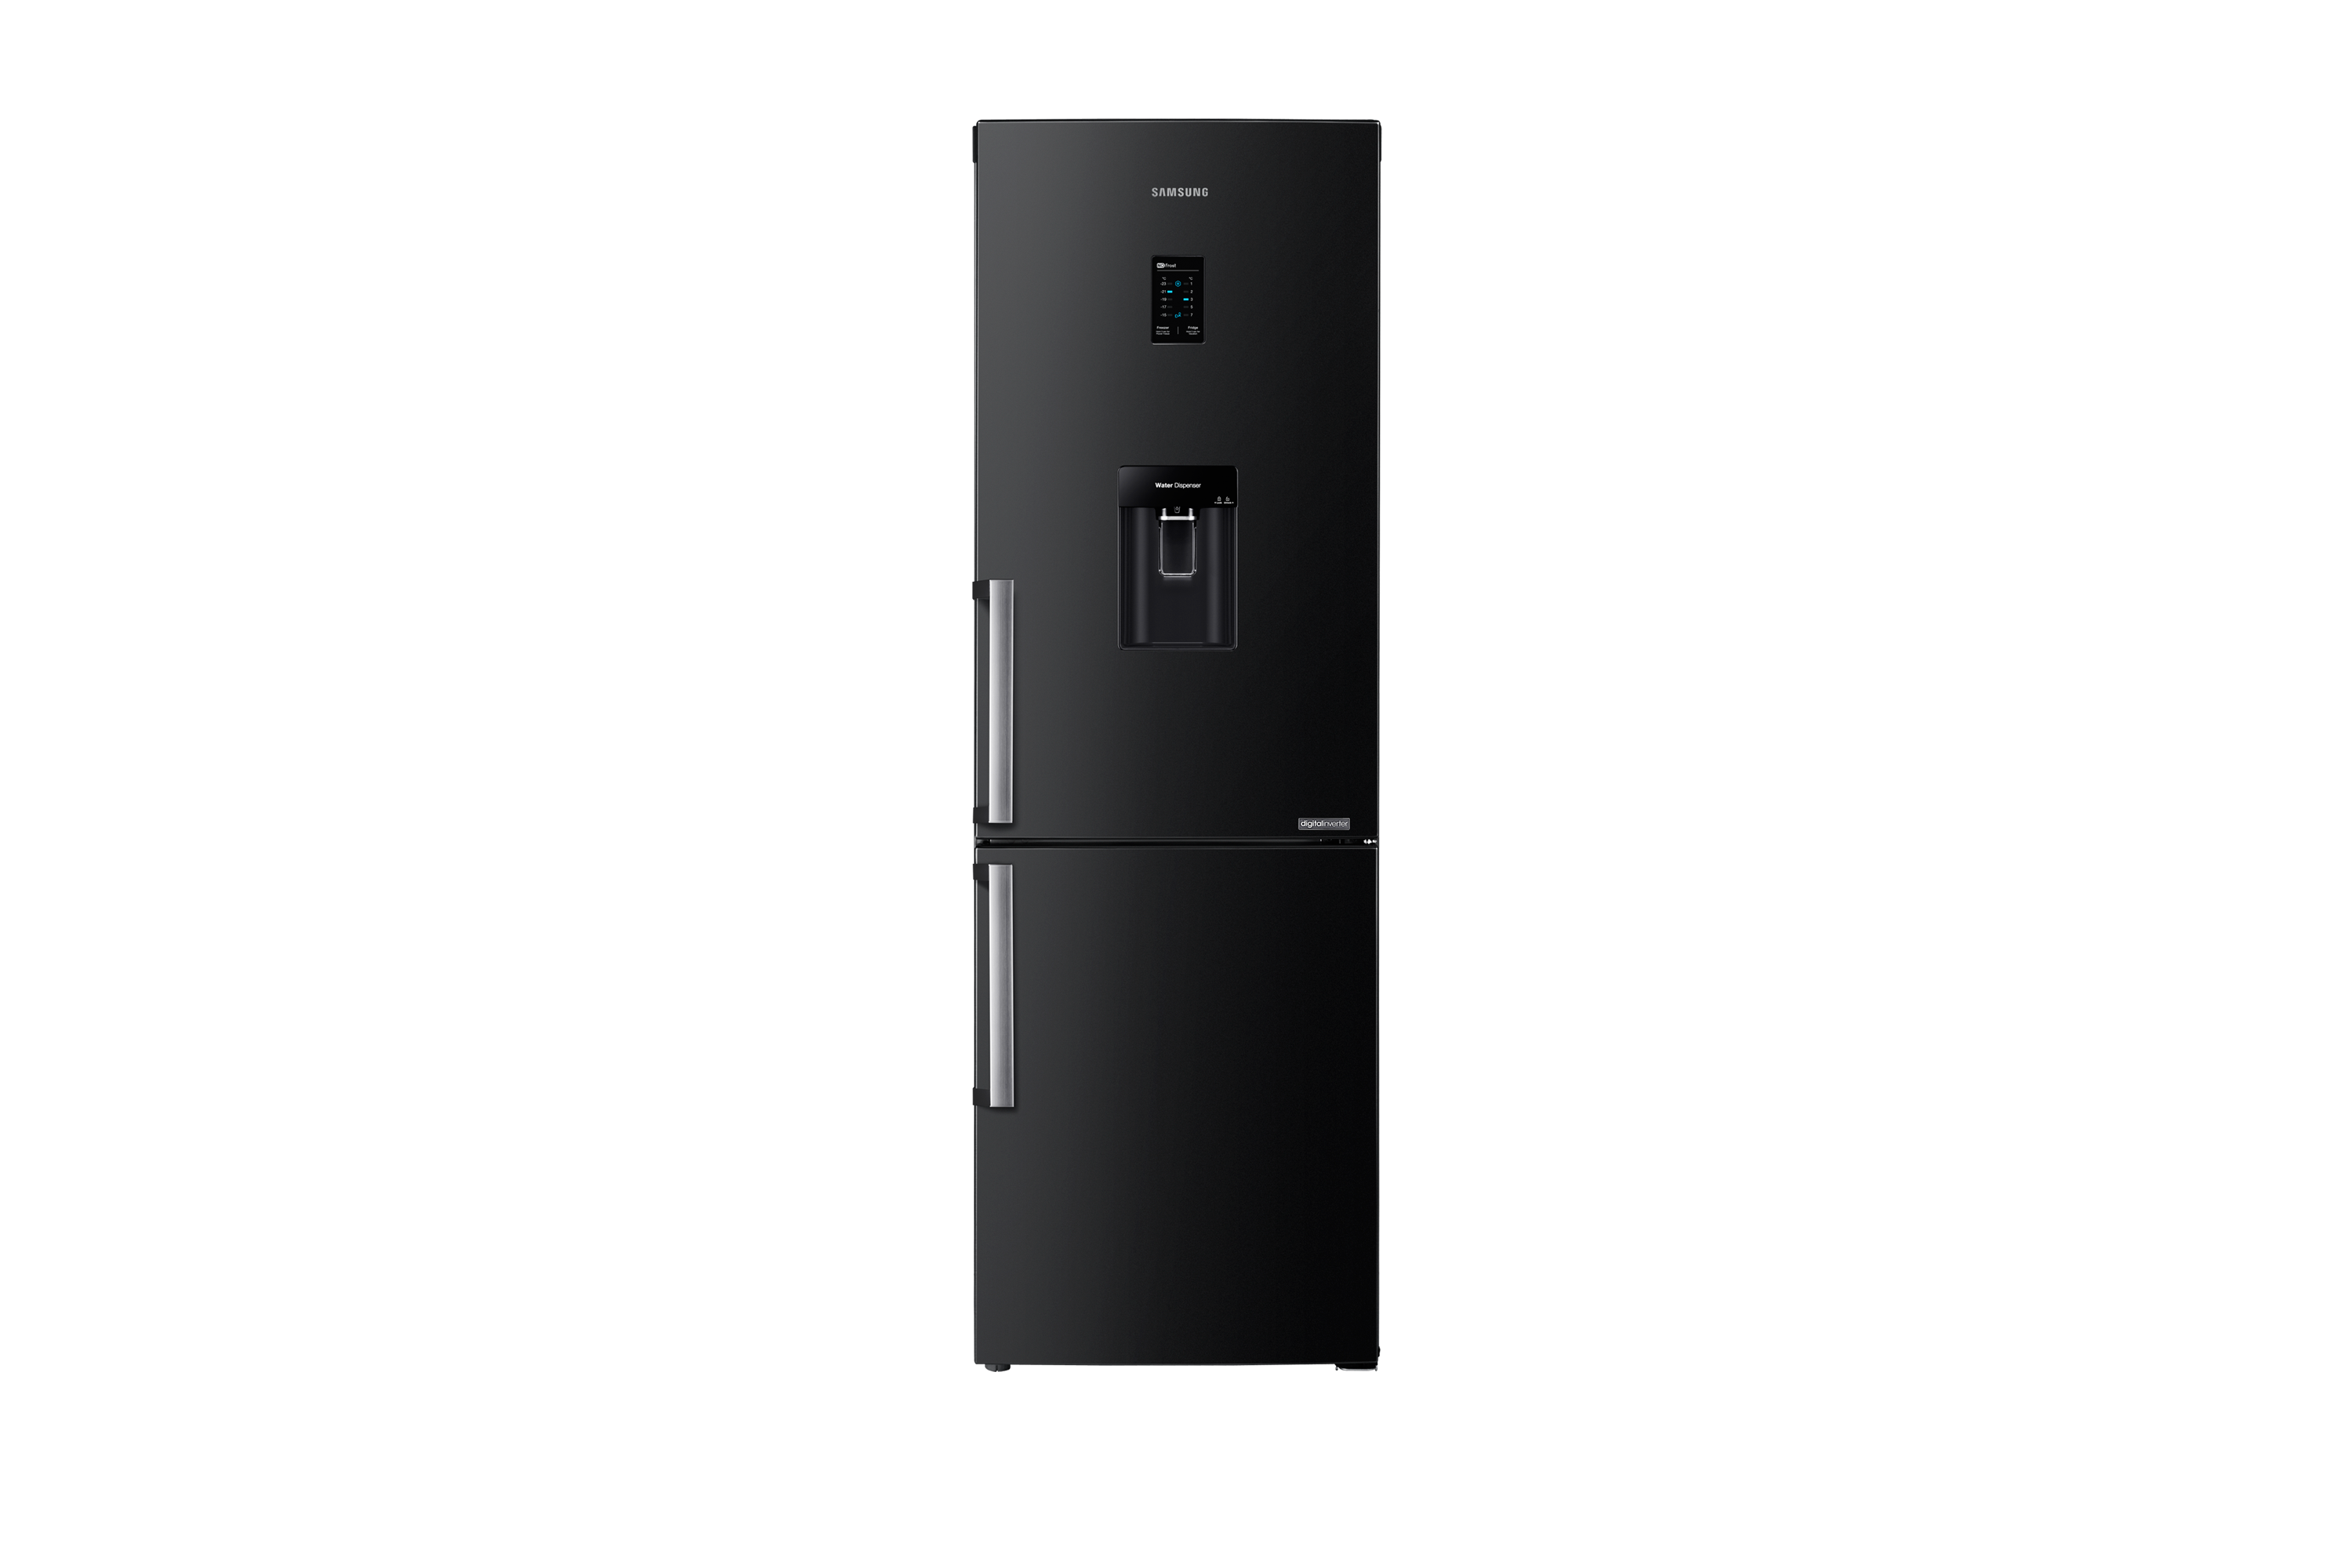 RB31 Fridge Freezer with Digital Inverter Technology, 308 L